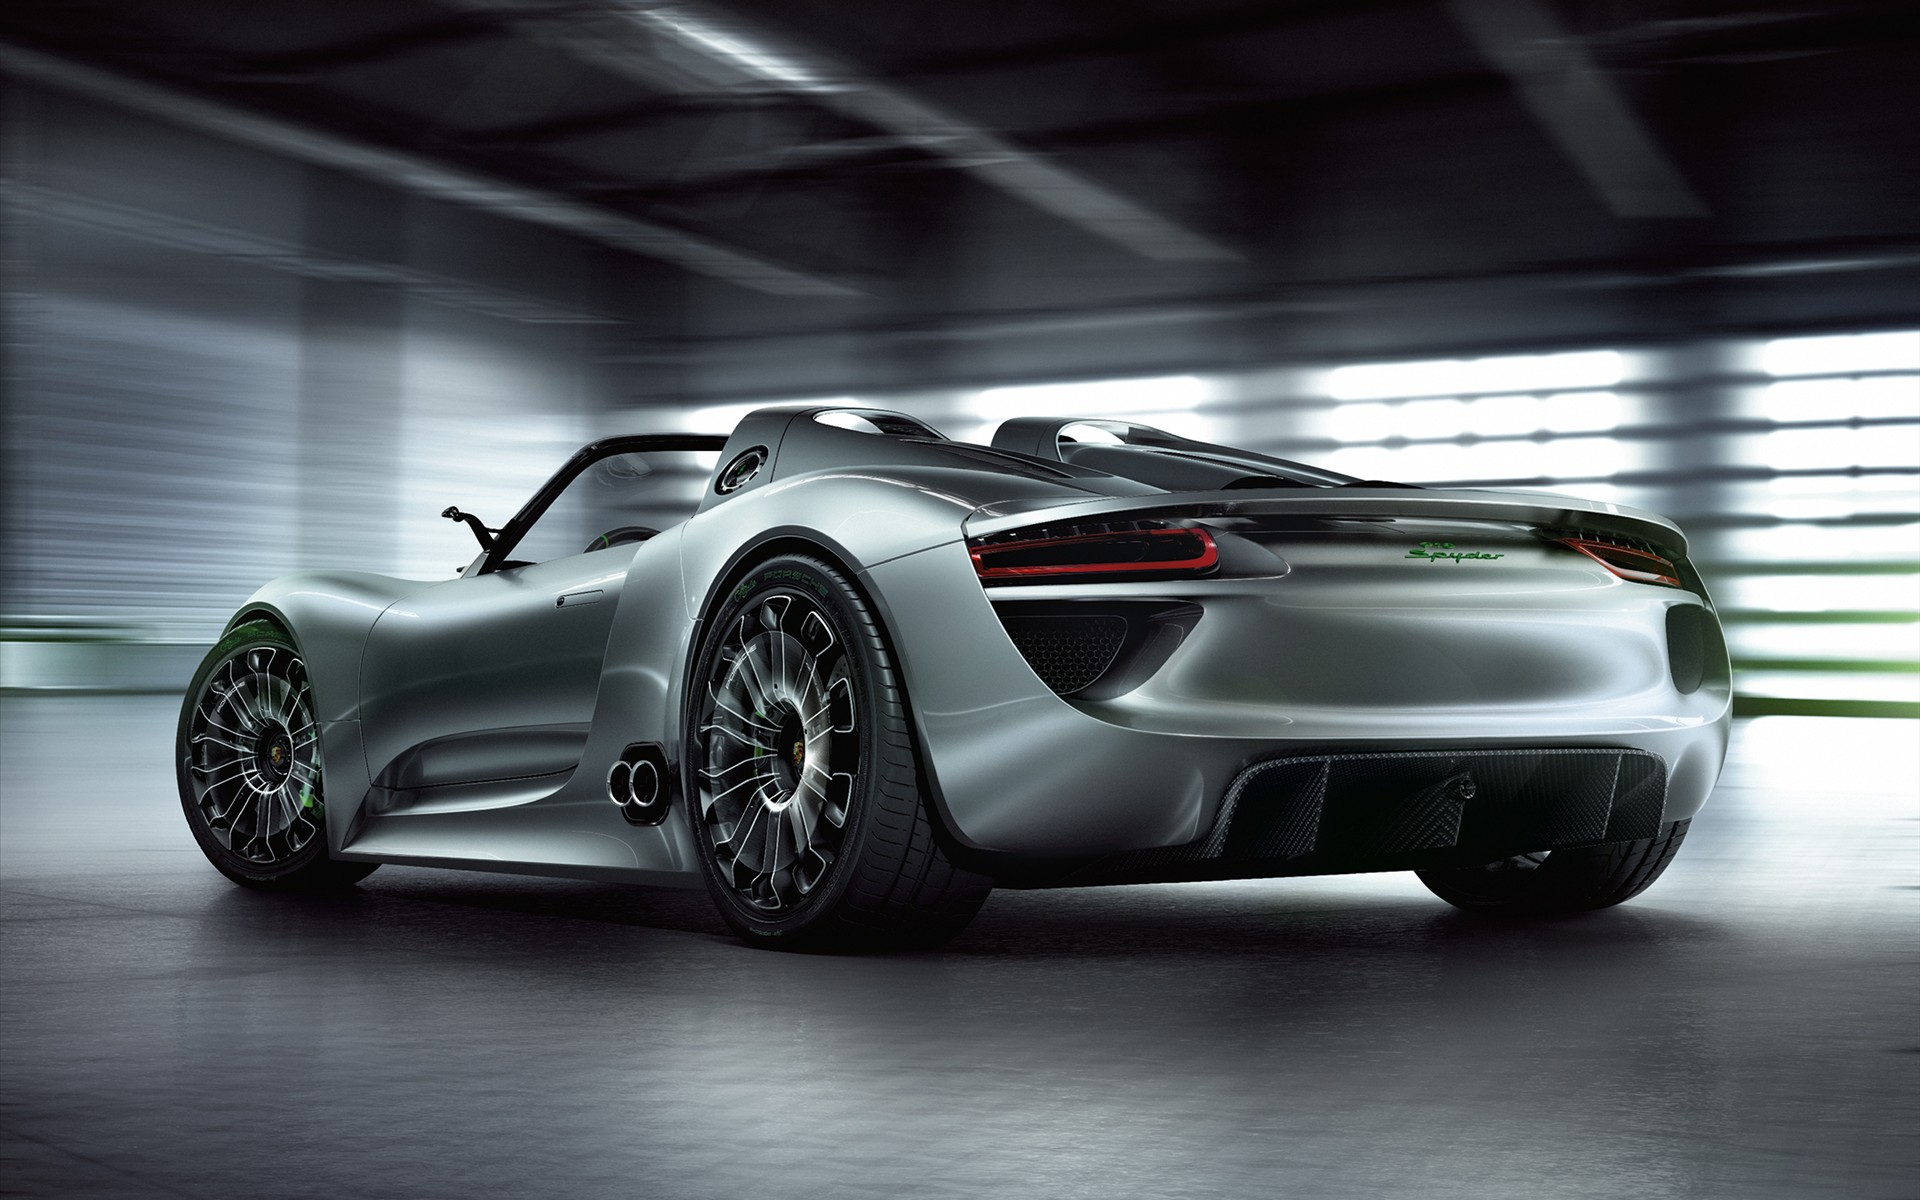 2011 porsche 918 spyder 2 wallpapers hd wallpapers - Porsche 918 Spyder Wallpaper